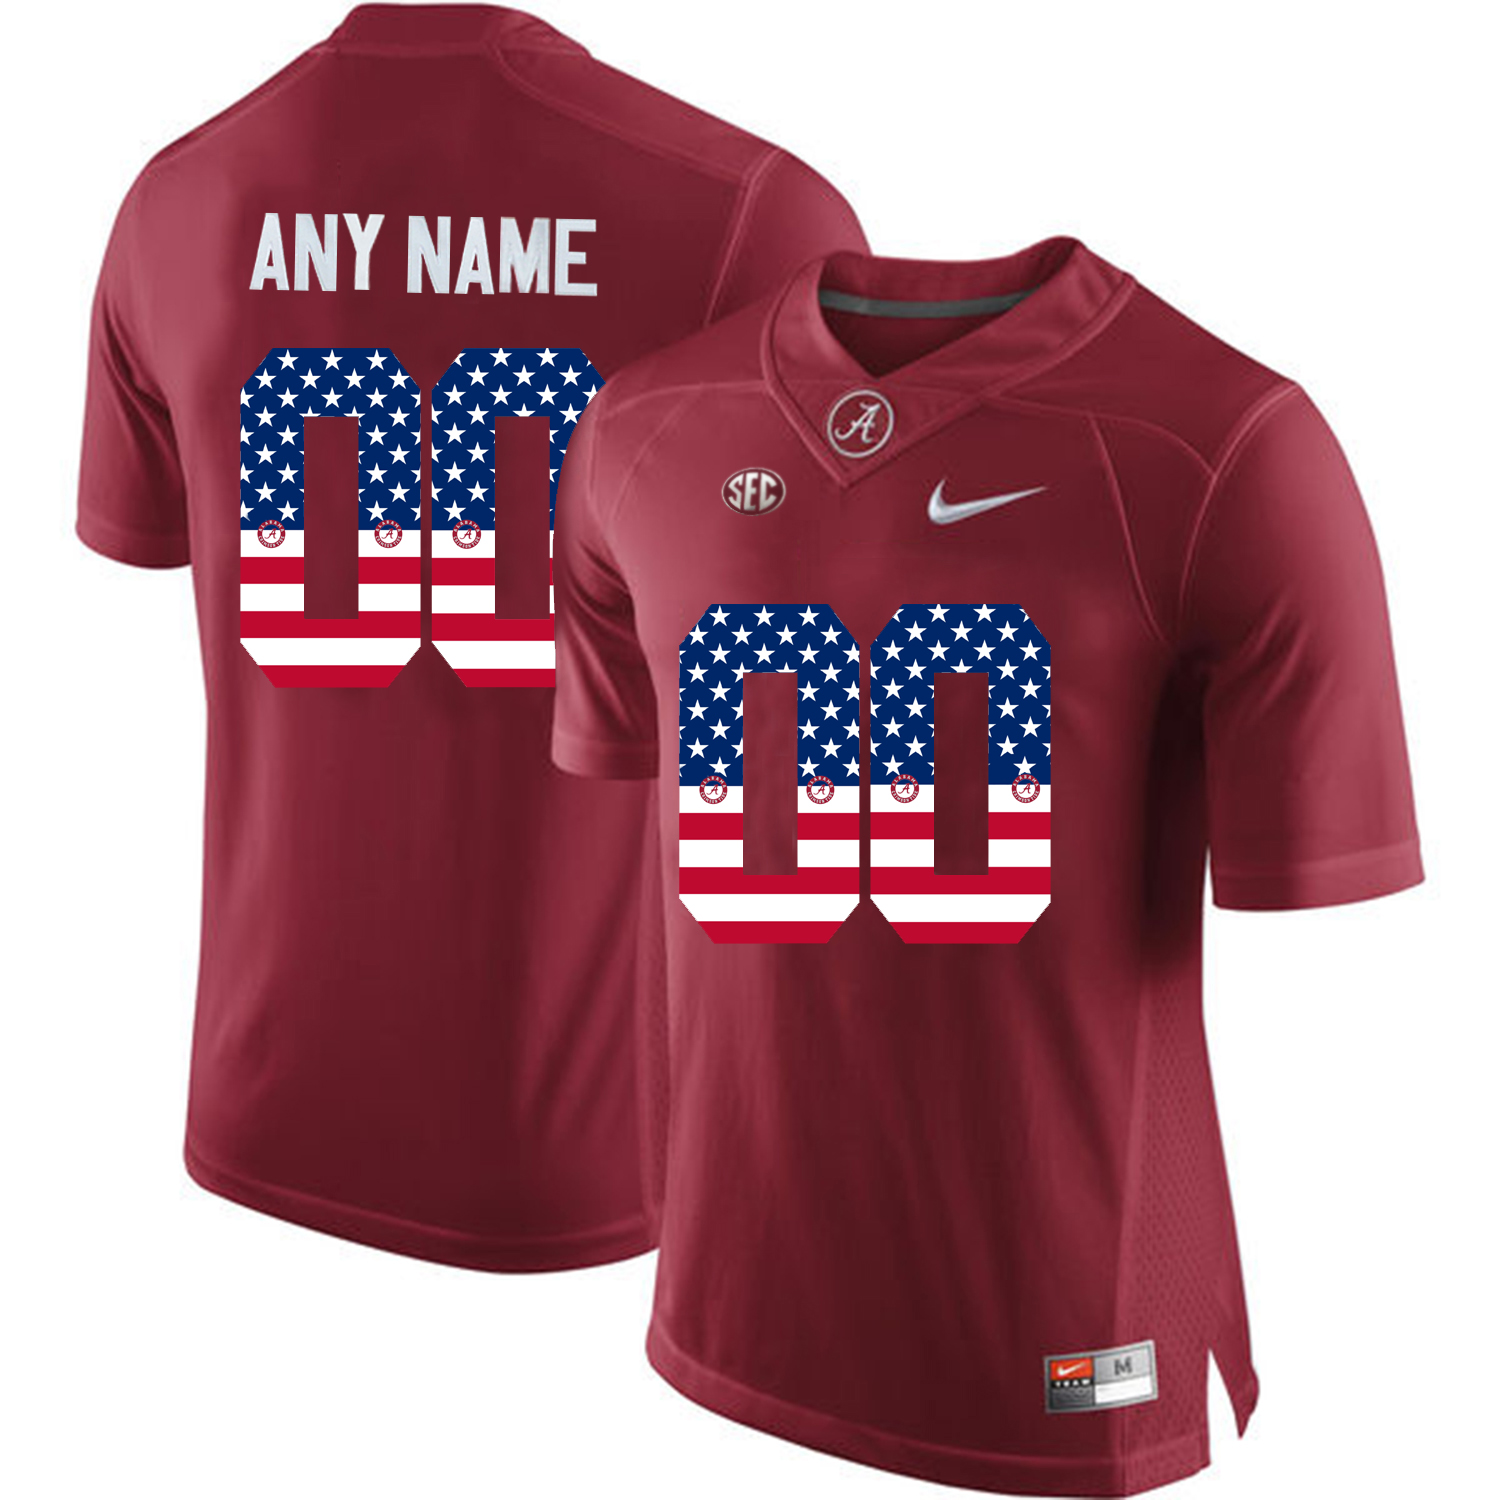 2016 US Flag Fashion Alabama Crimson Tide Customize College Football Limited Jersey Crimson